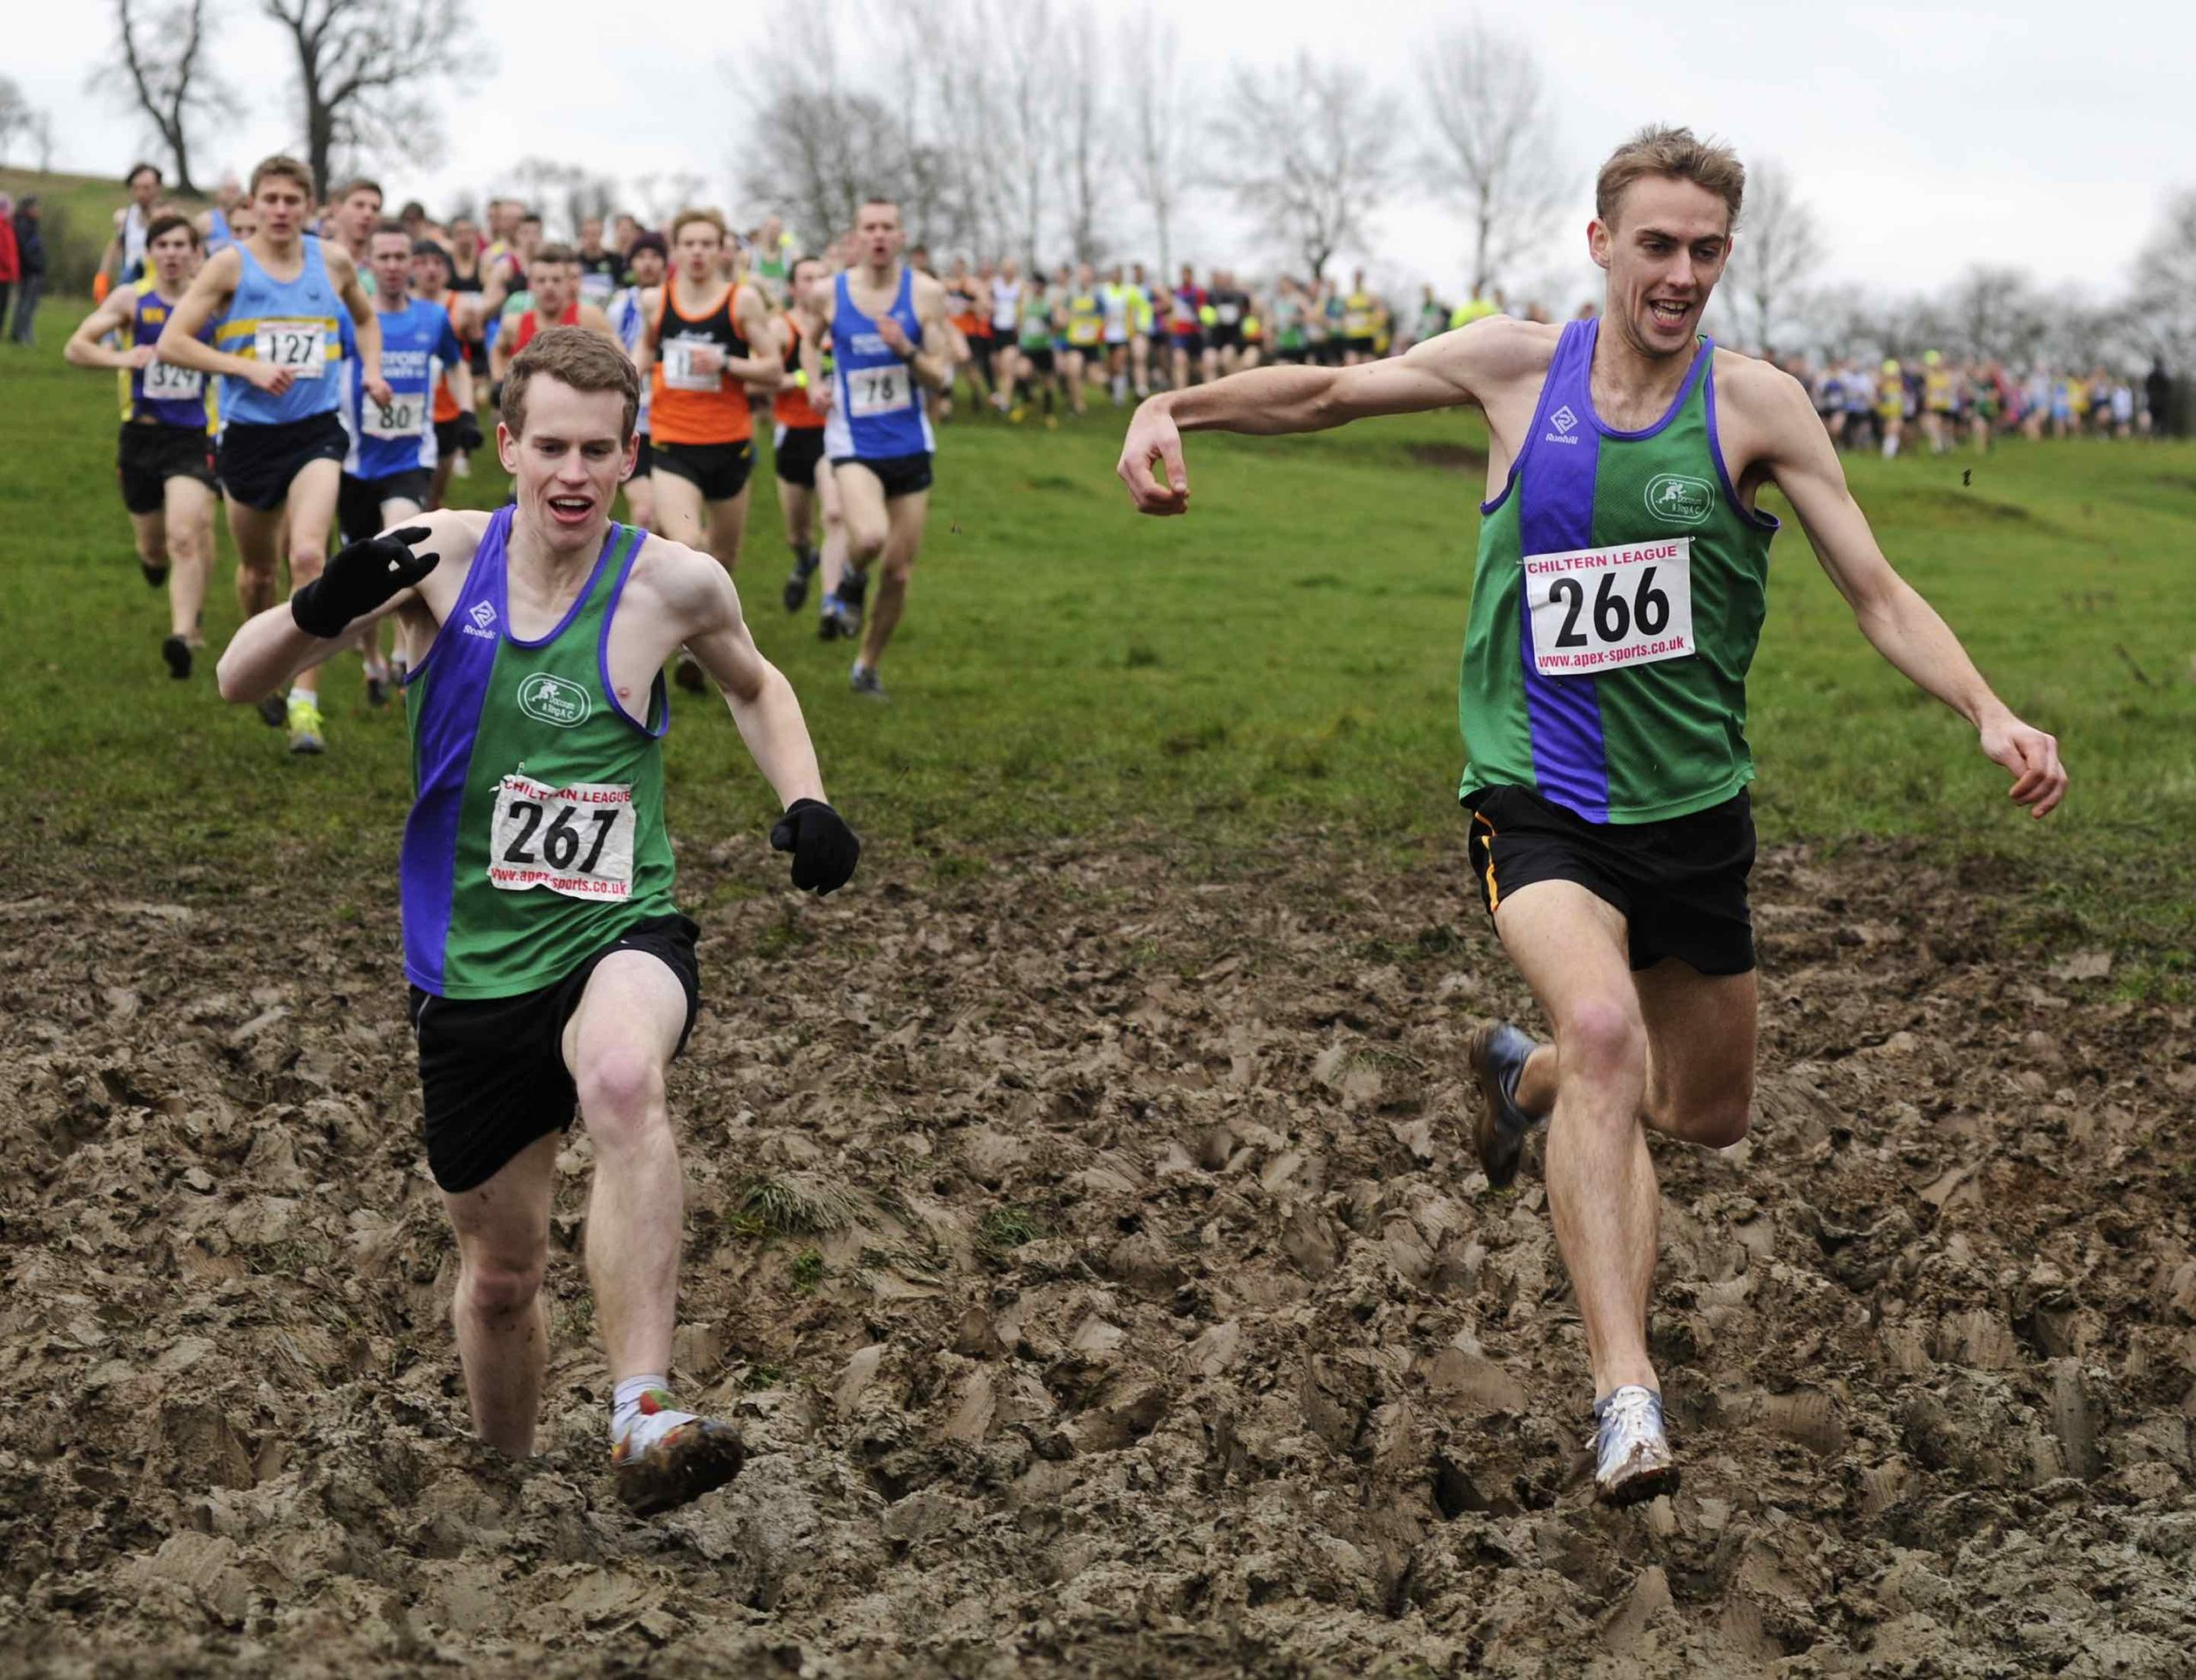 Cross country through the mud